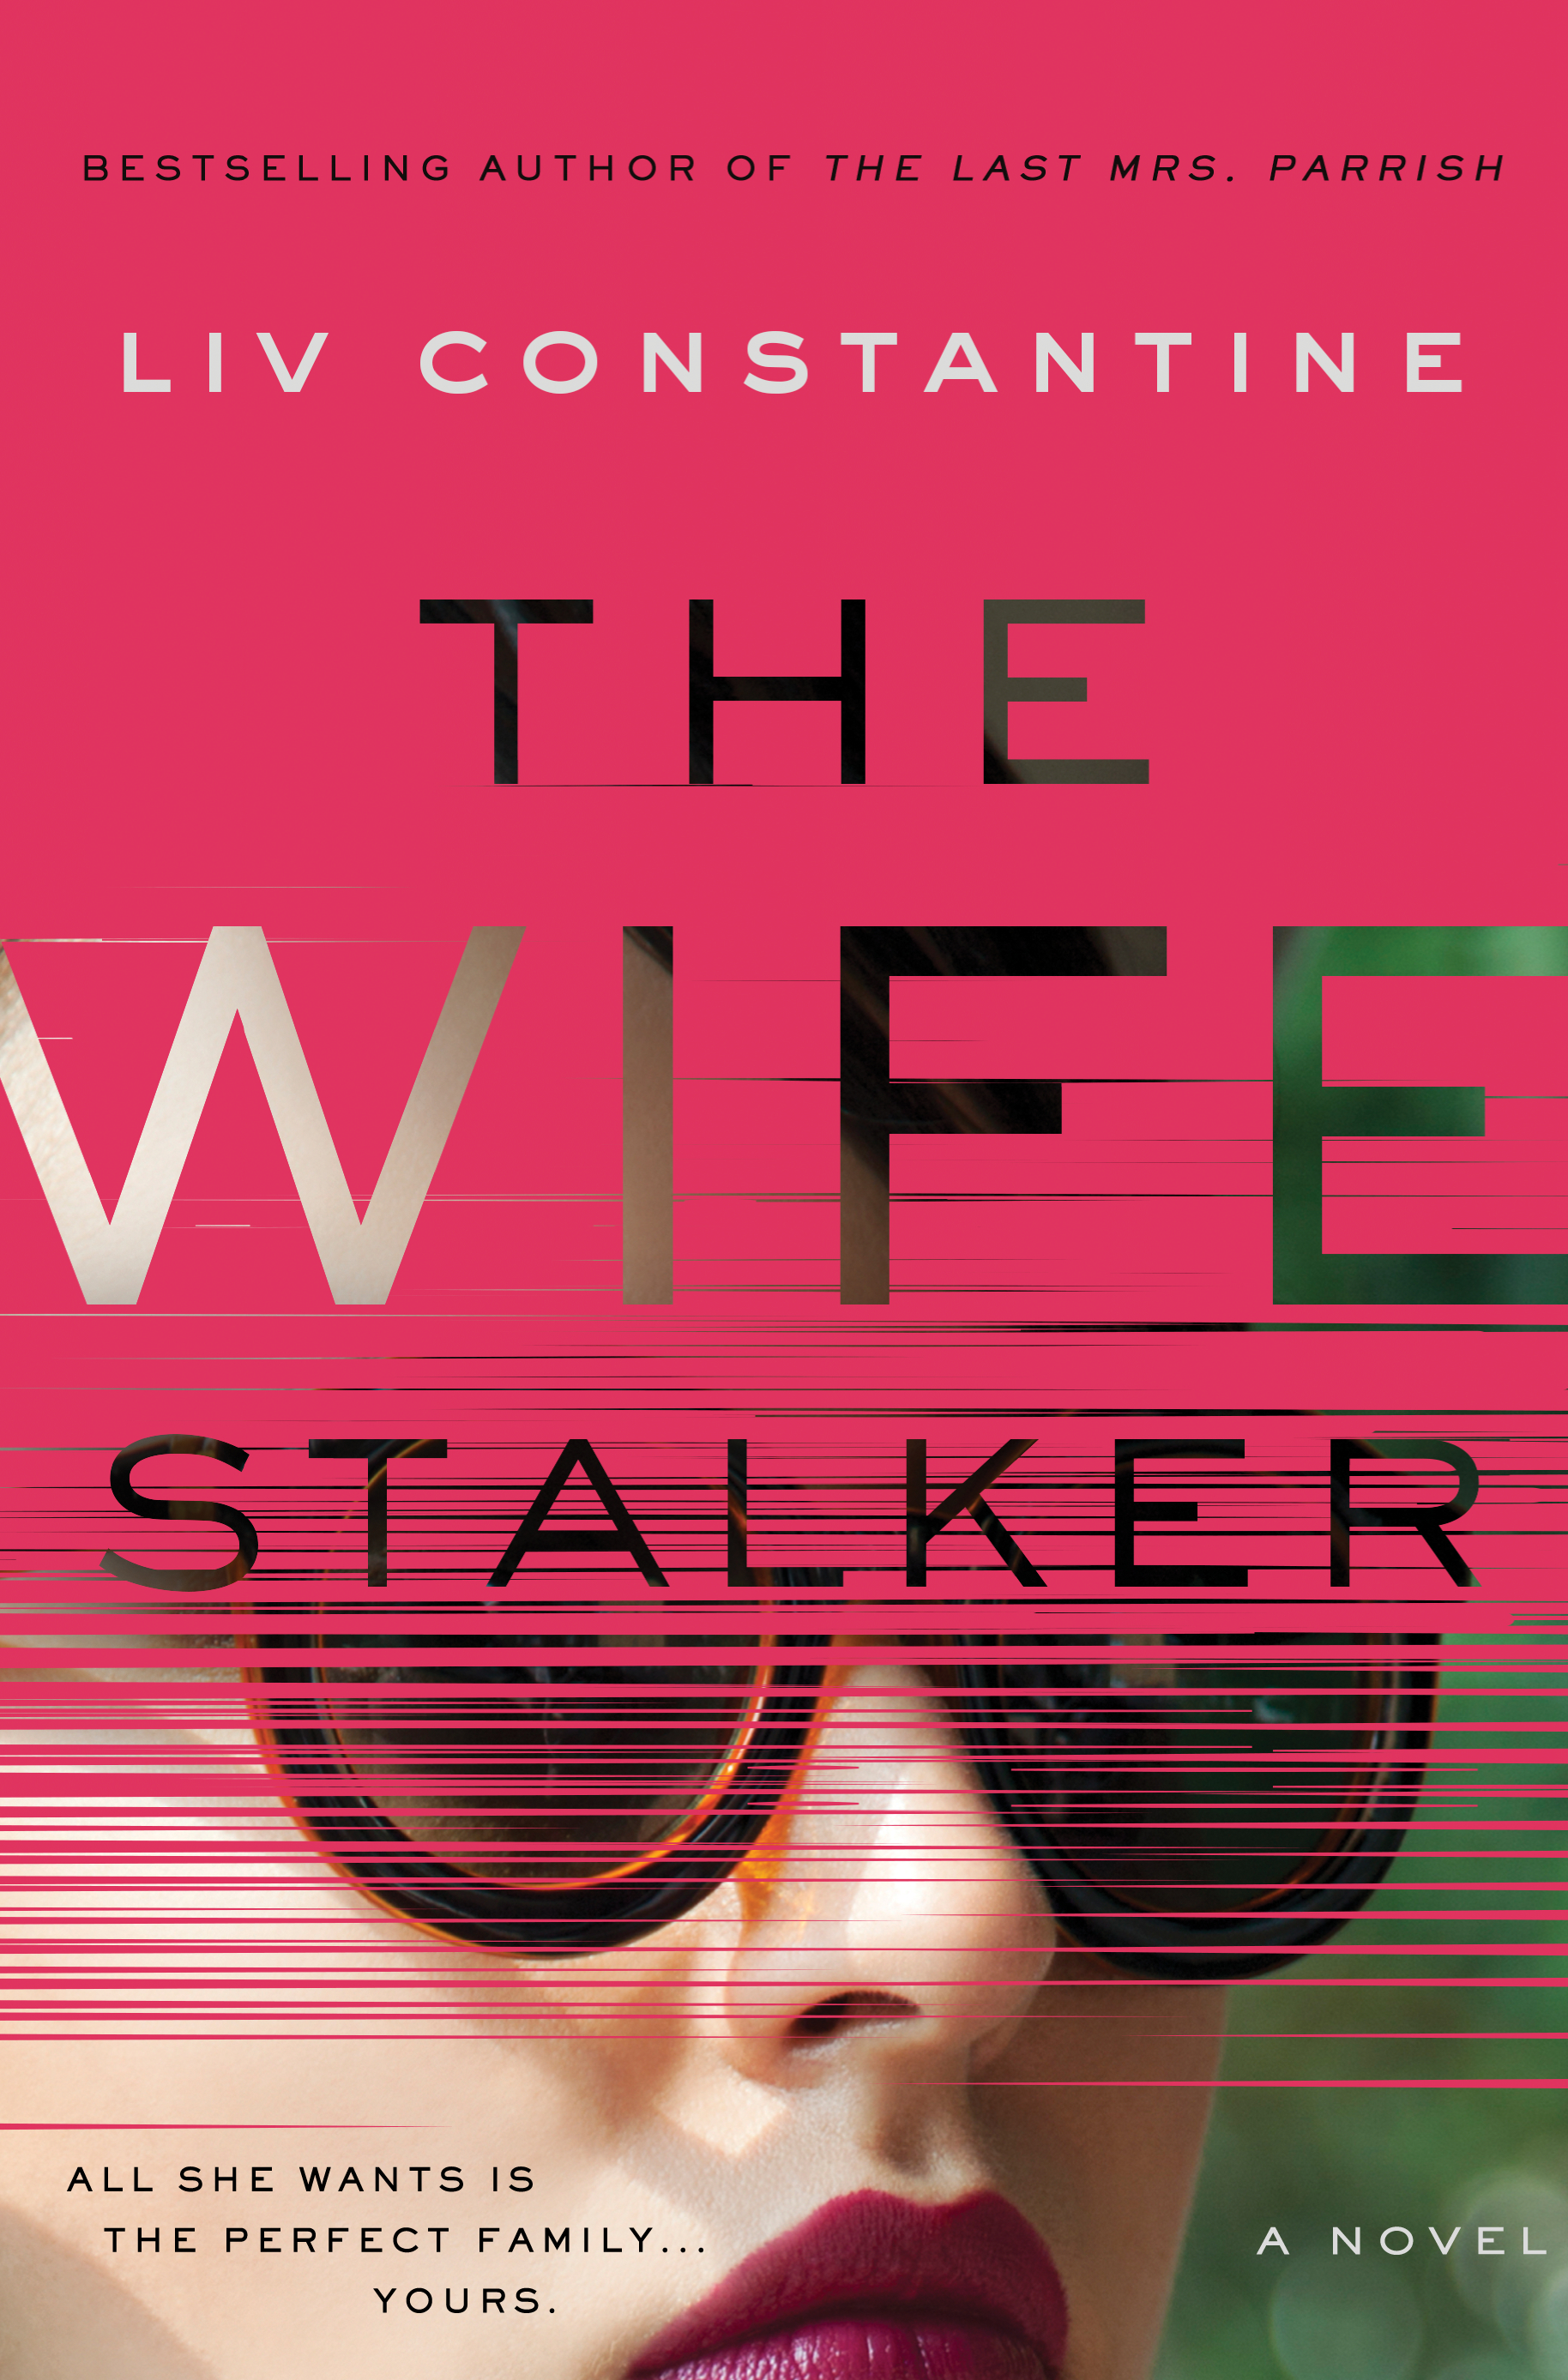 The Wife Stalker by Liv Constantine